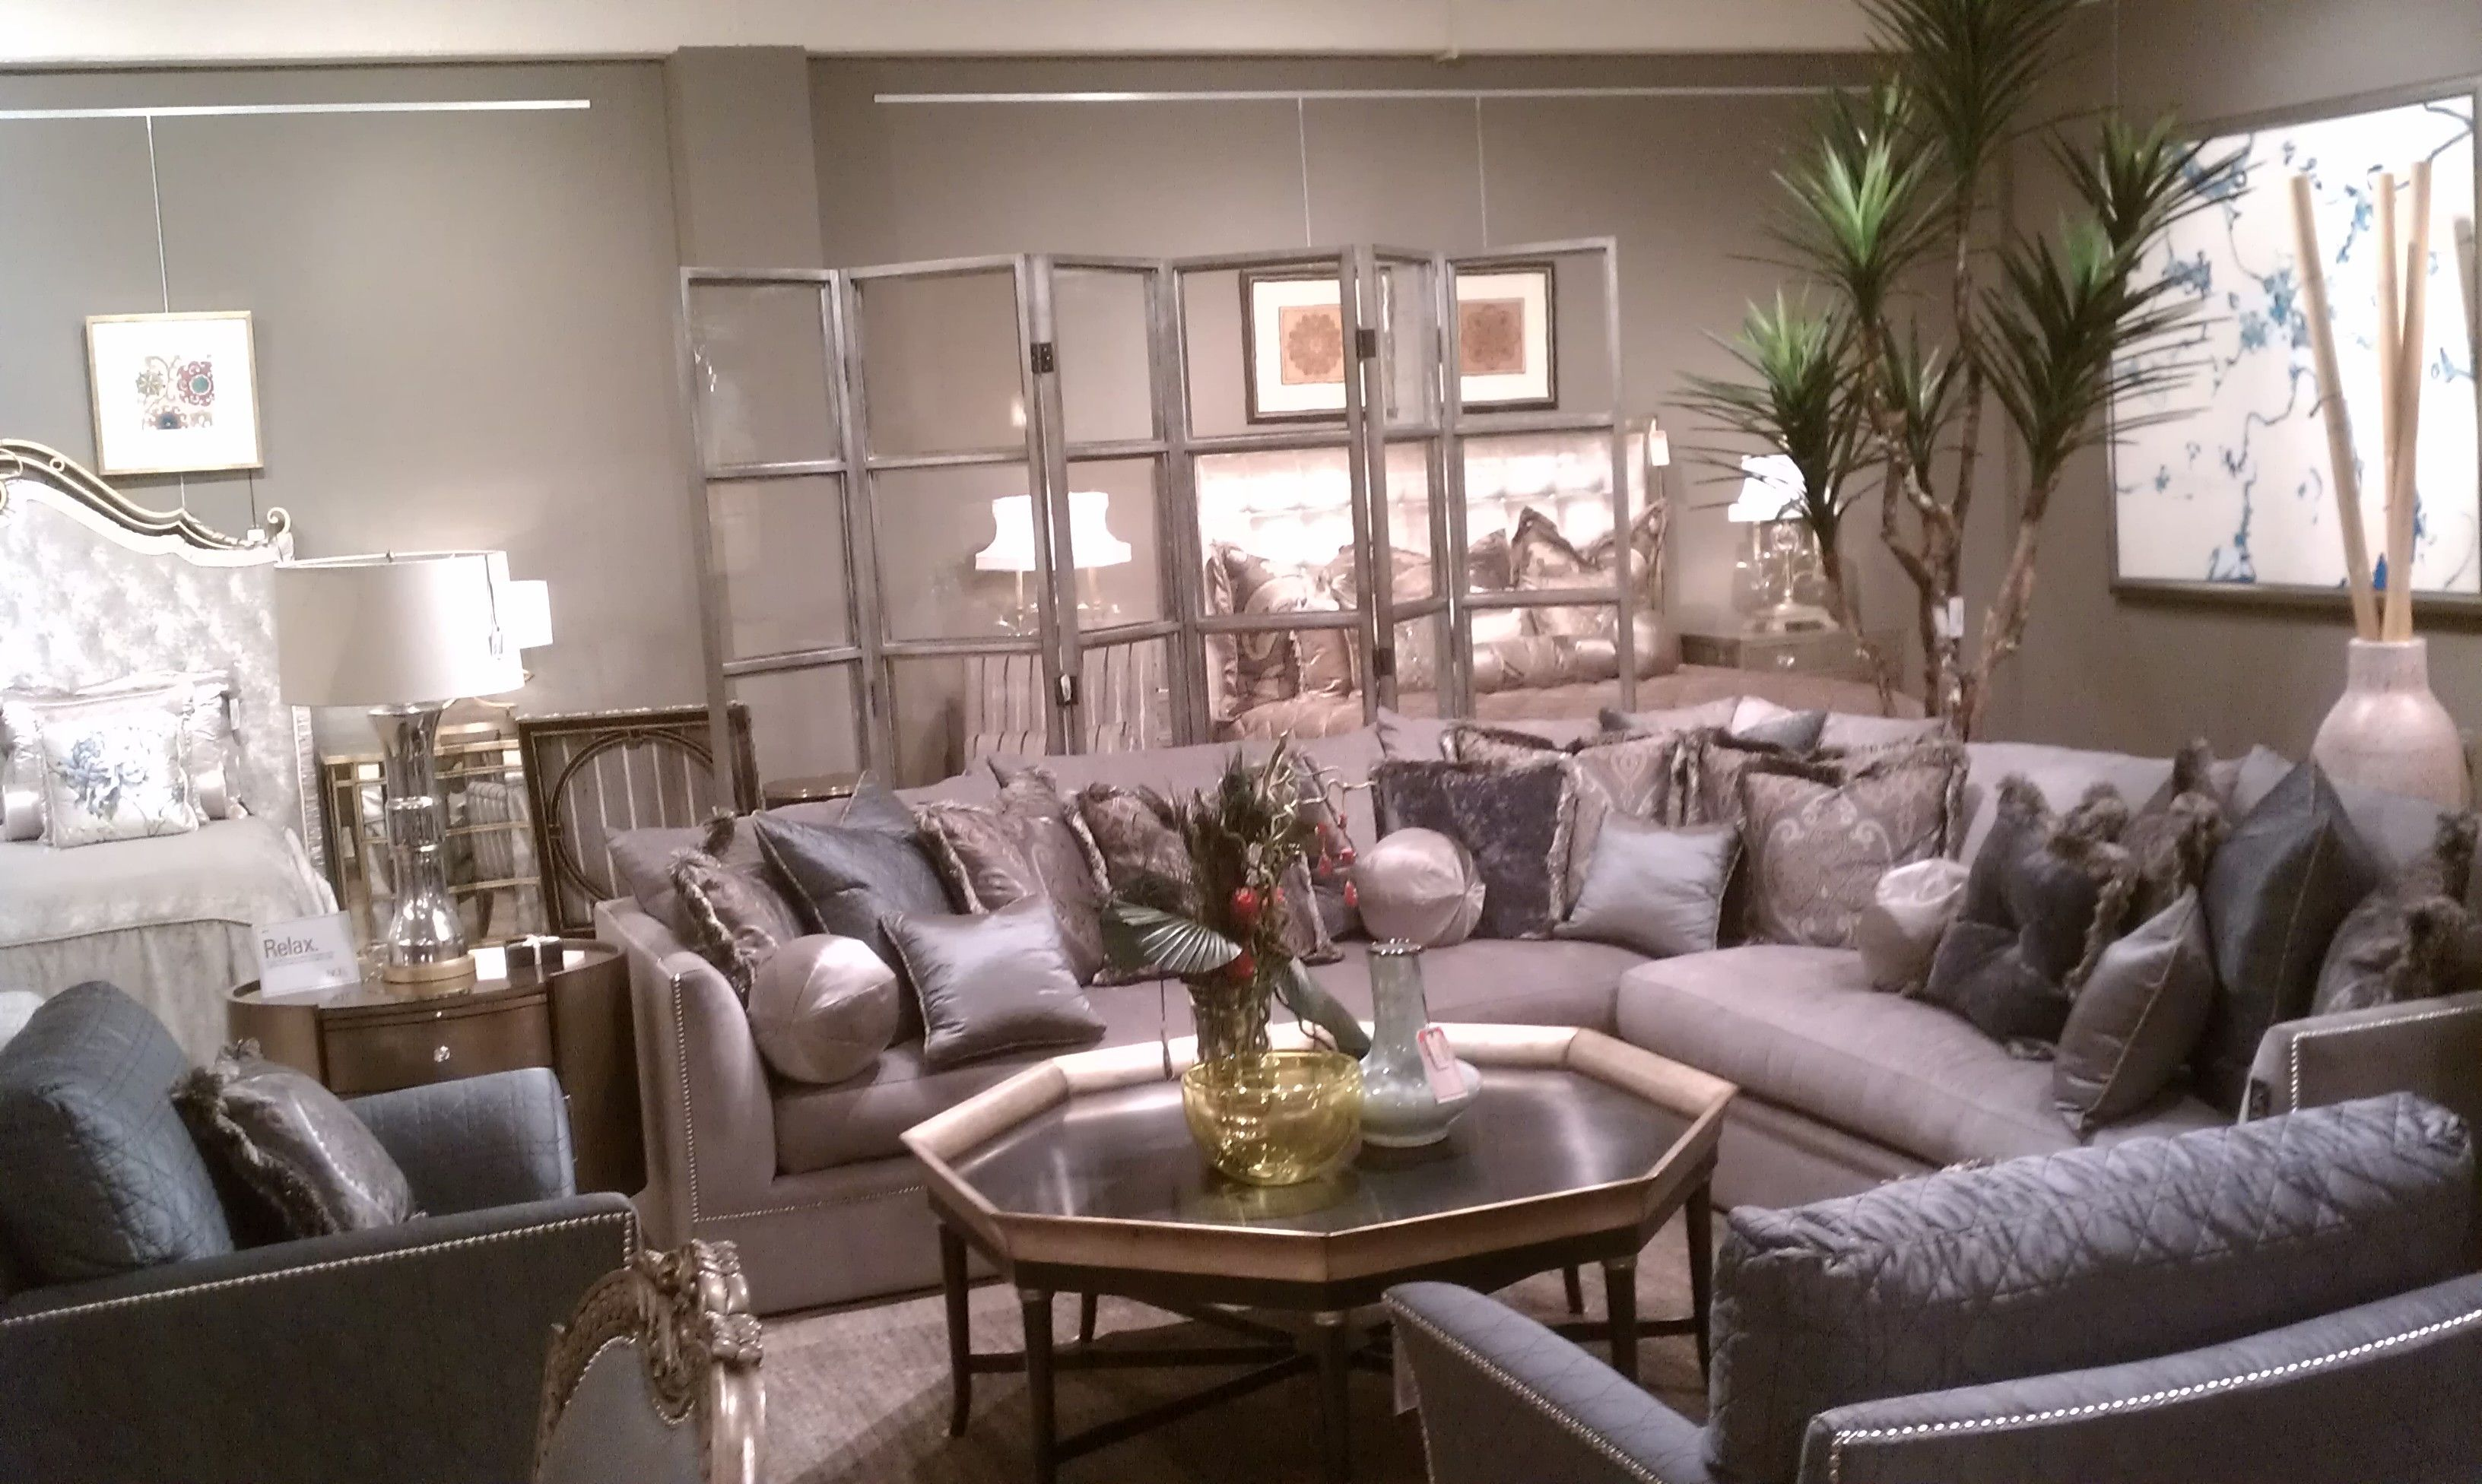 Good Noel Furniture, Houston TX   Amazing High End Customized Furniture From  Over 400 Vendors